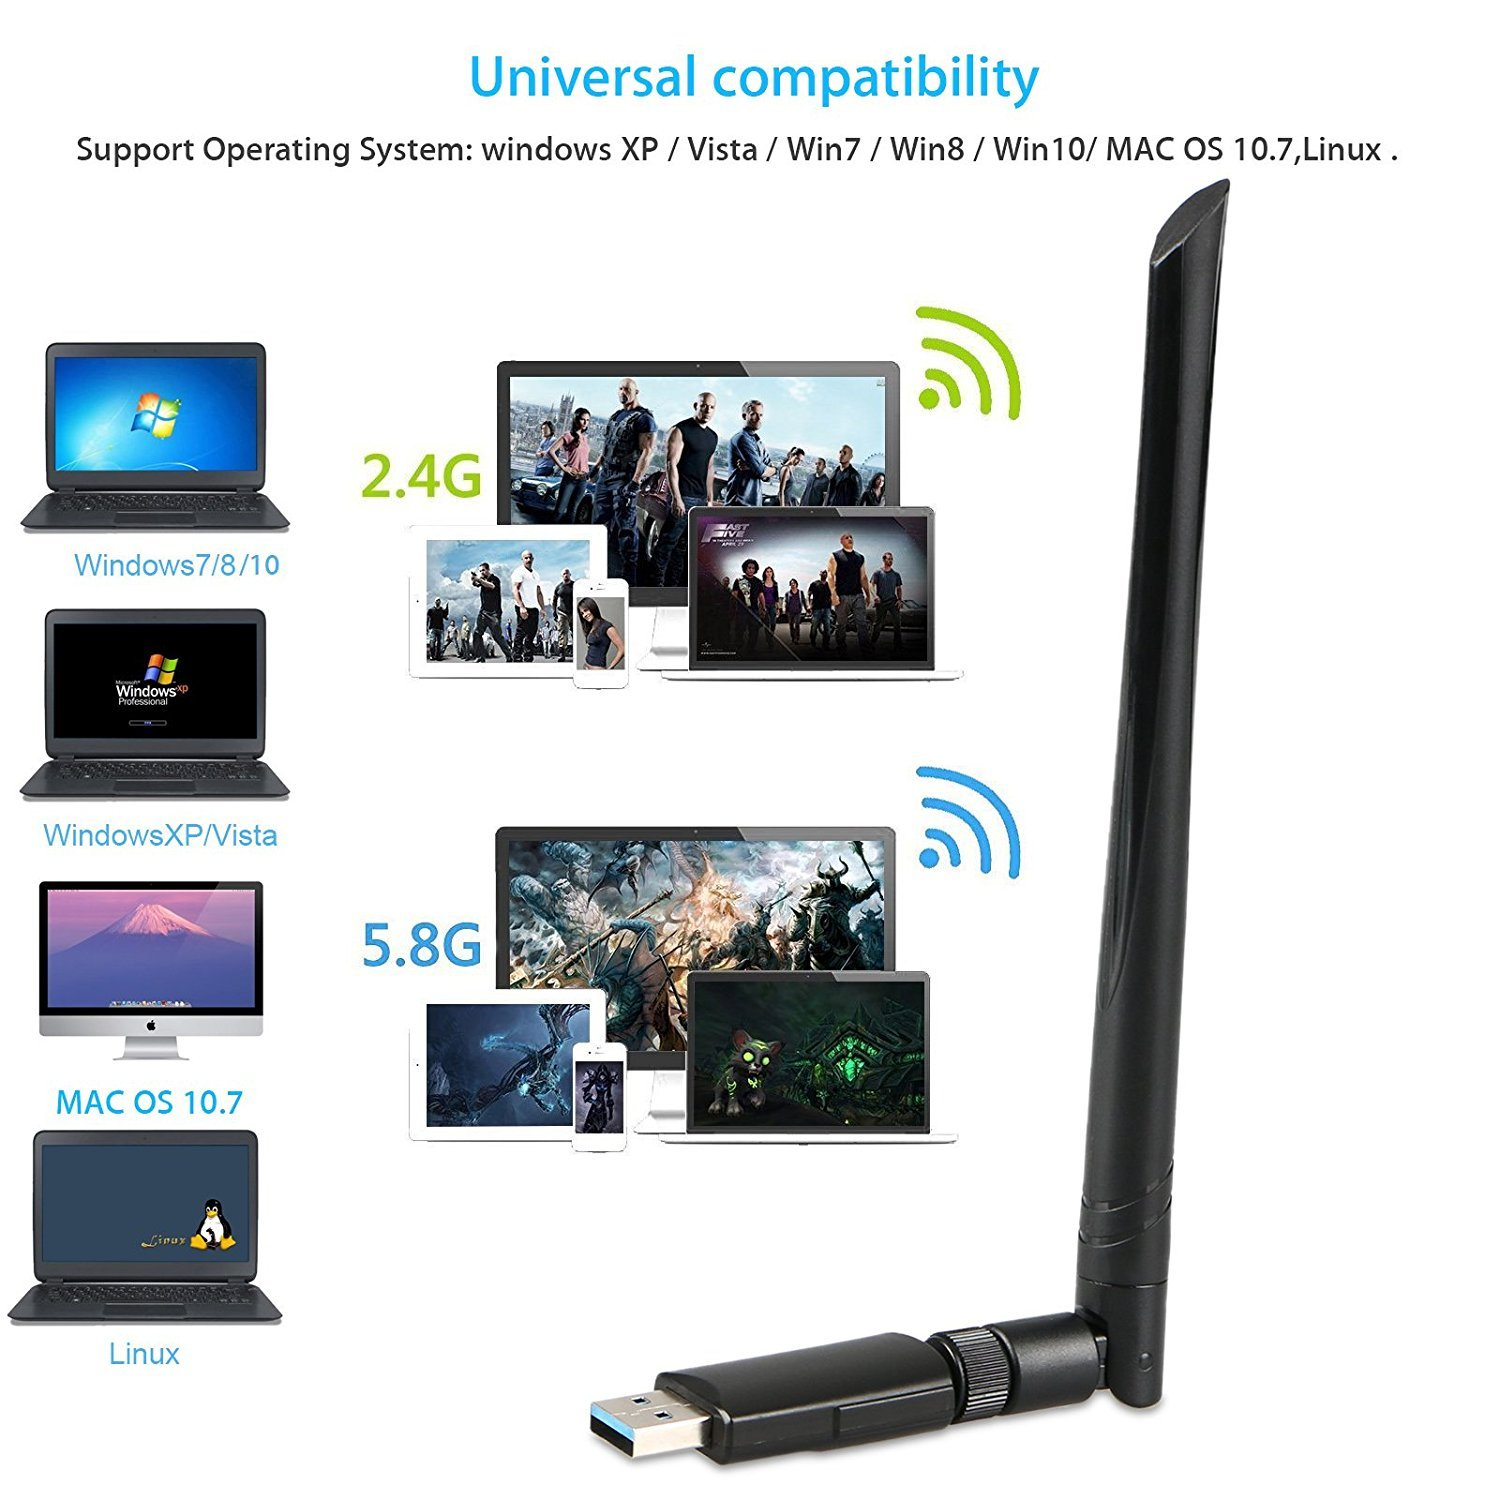 Wireless USB WiFi Adapter, EEEKit 1200Mbps 2 4GHz/5GHz Dual Band WiFi  Adapter 802 11AC Wireless USB 3 0 Network w/Antenna for Computer PC Laptop  Win